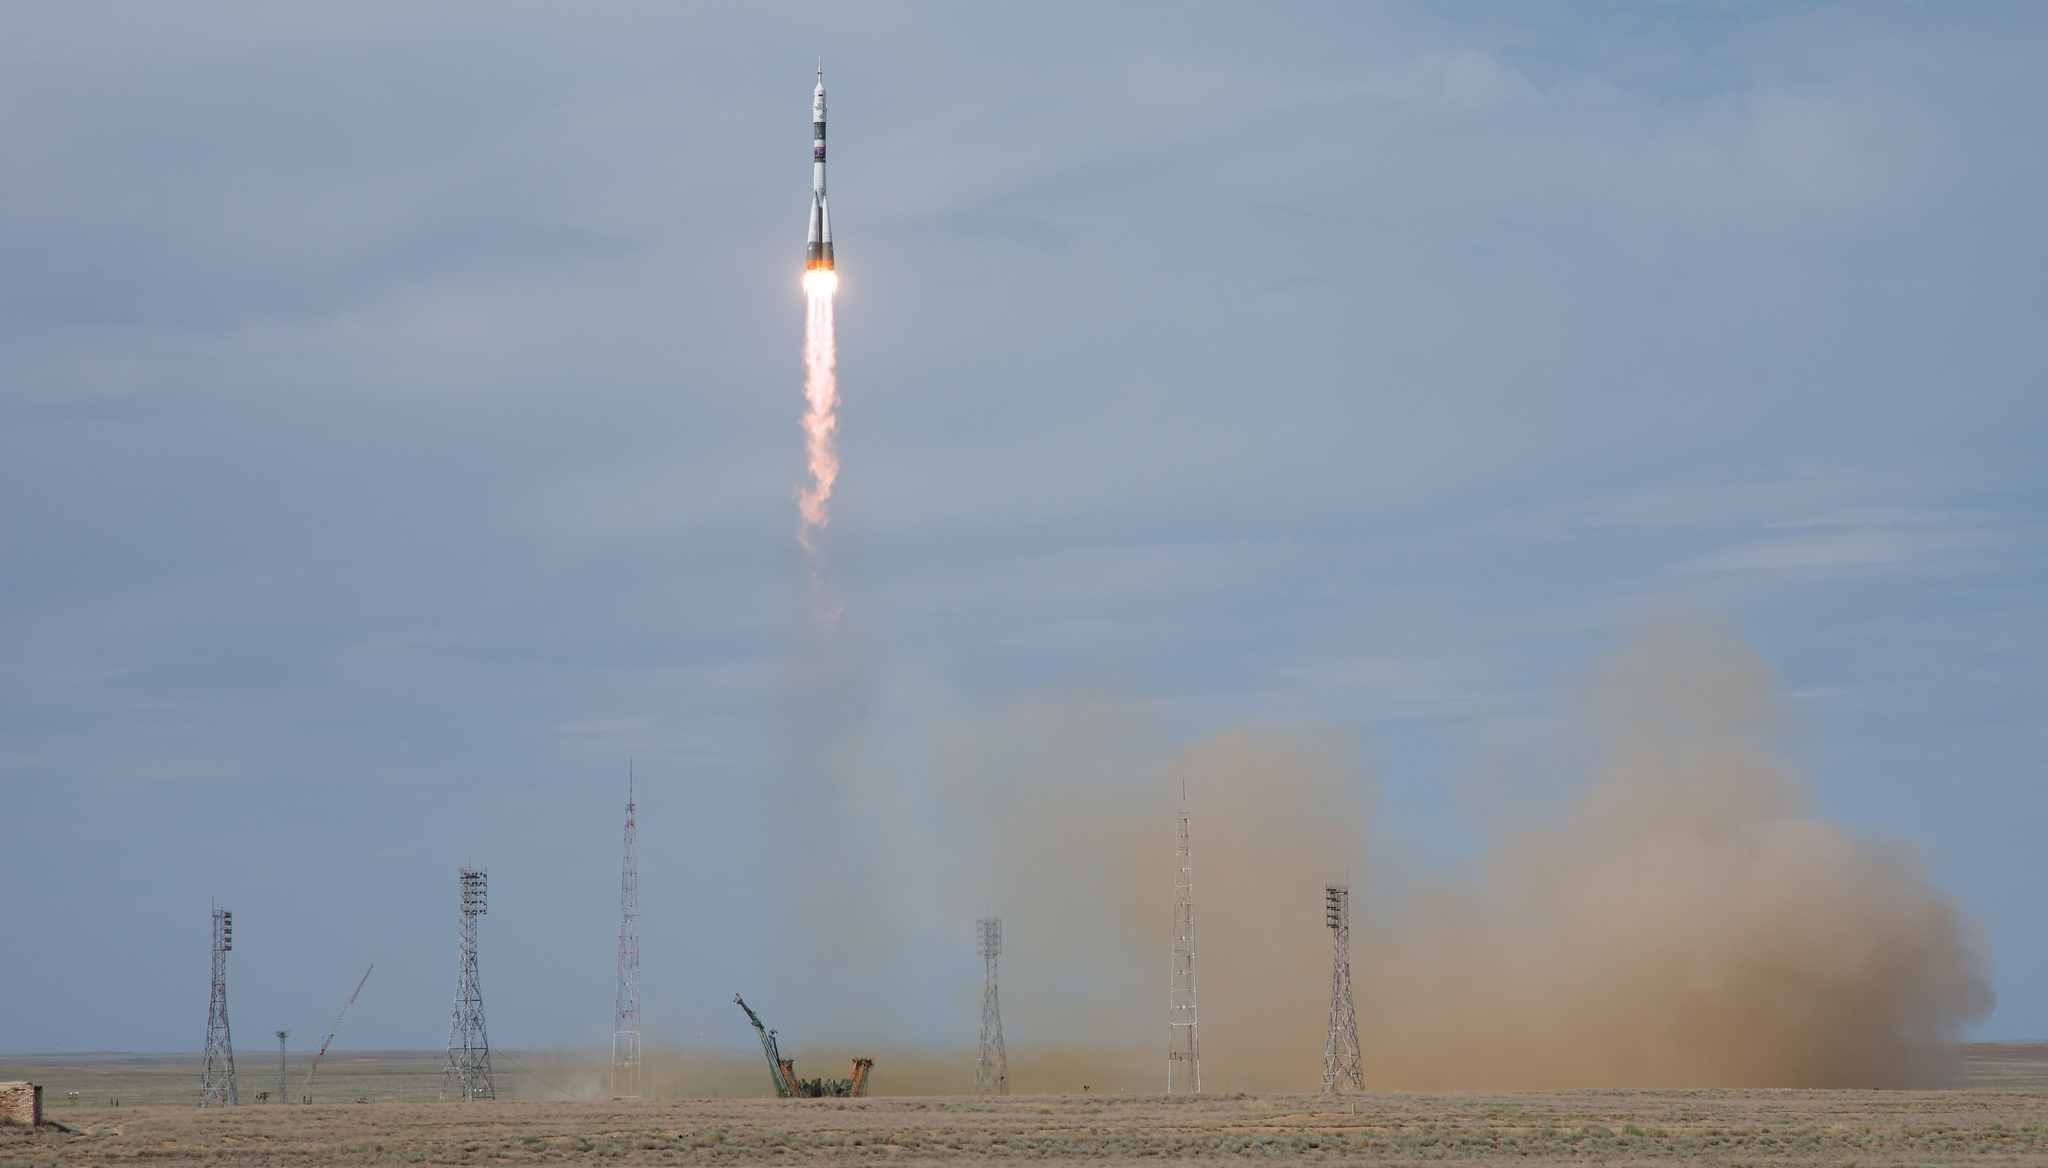 File photo of a previous Soyuz launch. Soyuz MS-10 launched Oct. 11, 2018, and failed to reach orbit. Credit: NASA